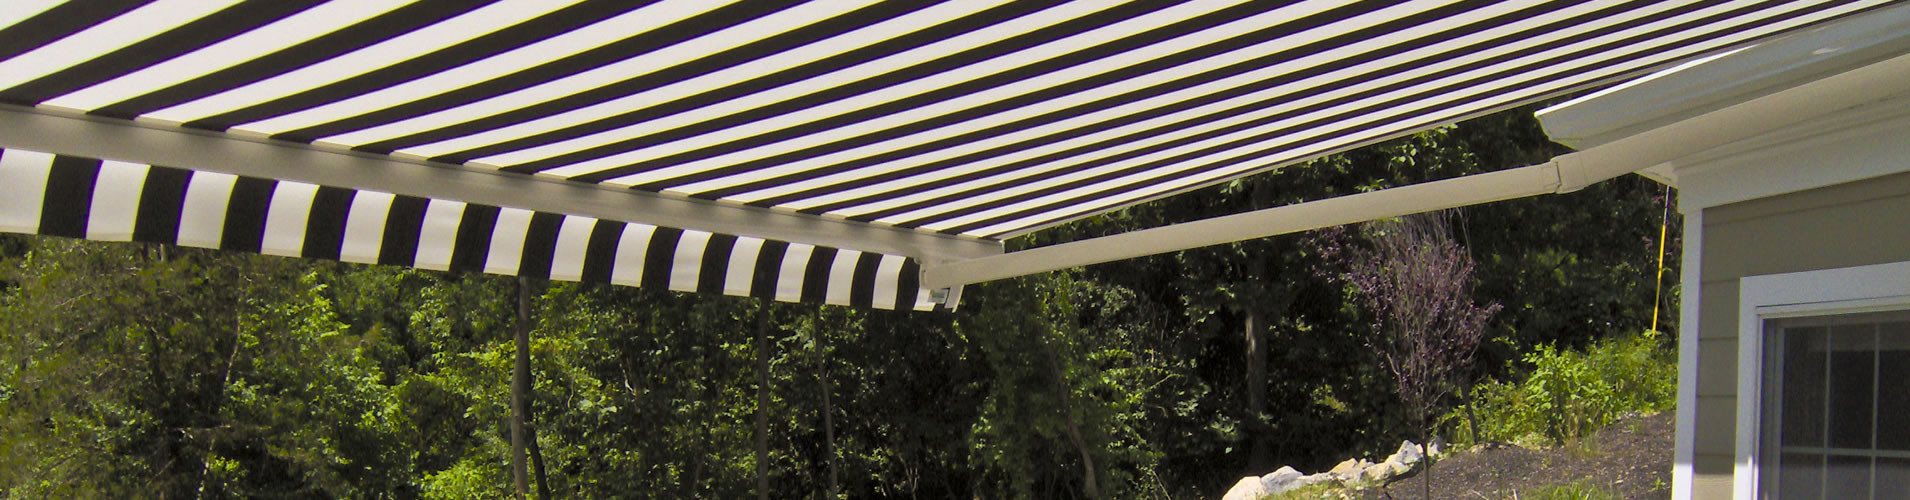 Austin Shades Shutters Patio Screens Awnings